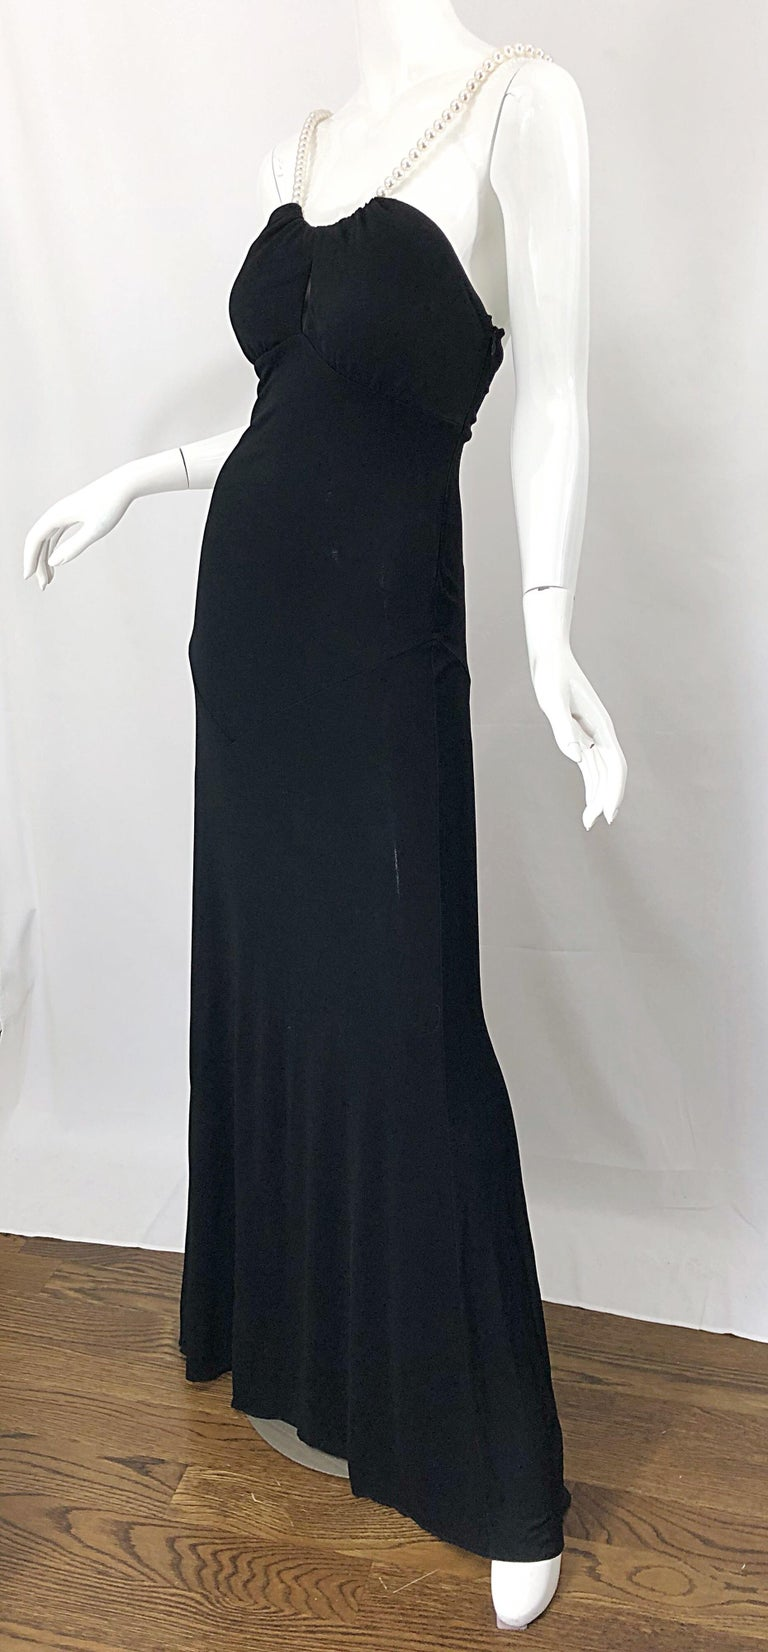 Michael Kors Collection Pearl Open Back Size 4 / 6 Black Grecian Gown Dress For Sale 5